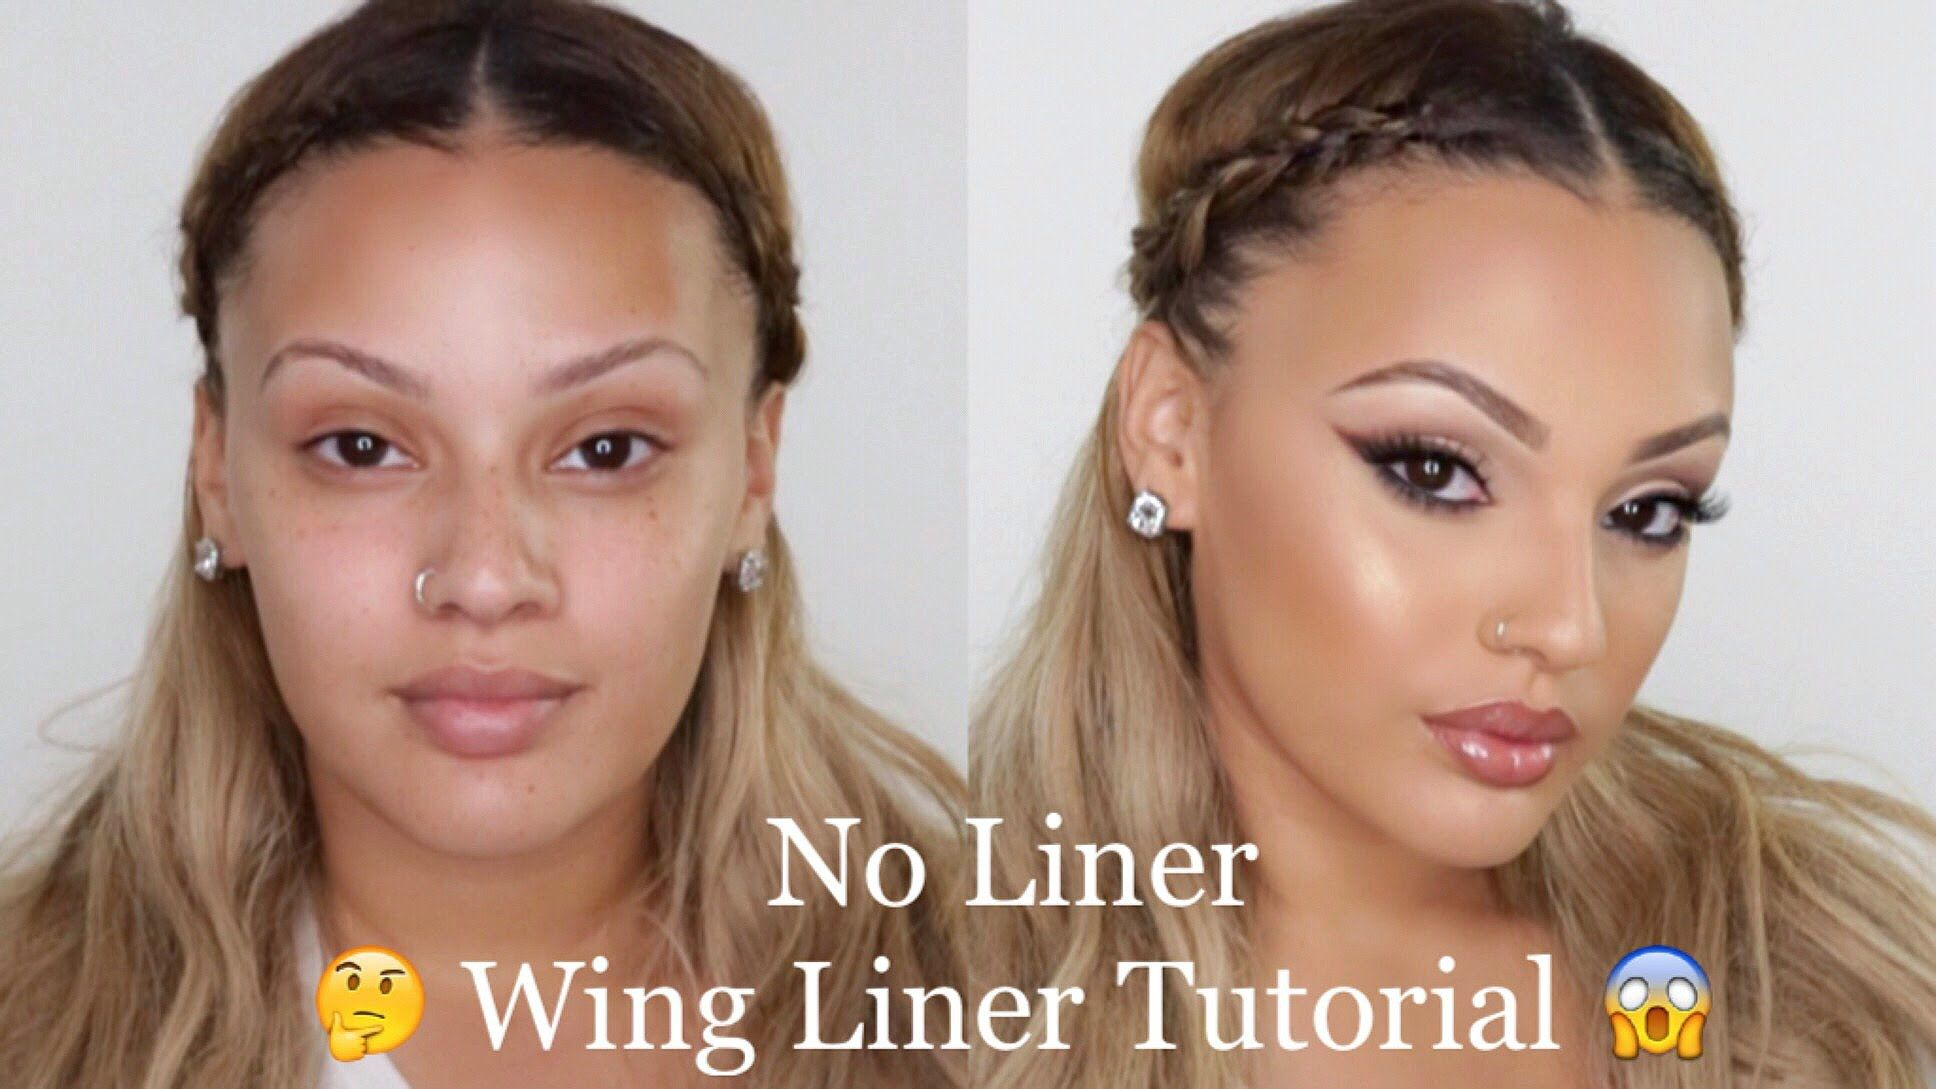 Smoked liner without any eyeliner tutorial vivaglamkay make smoked liner without any eyeliner tutorial vivaglamkay blending spongeeyeliner baditri Choice Image